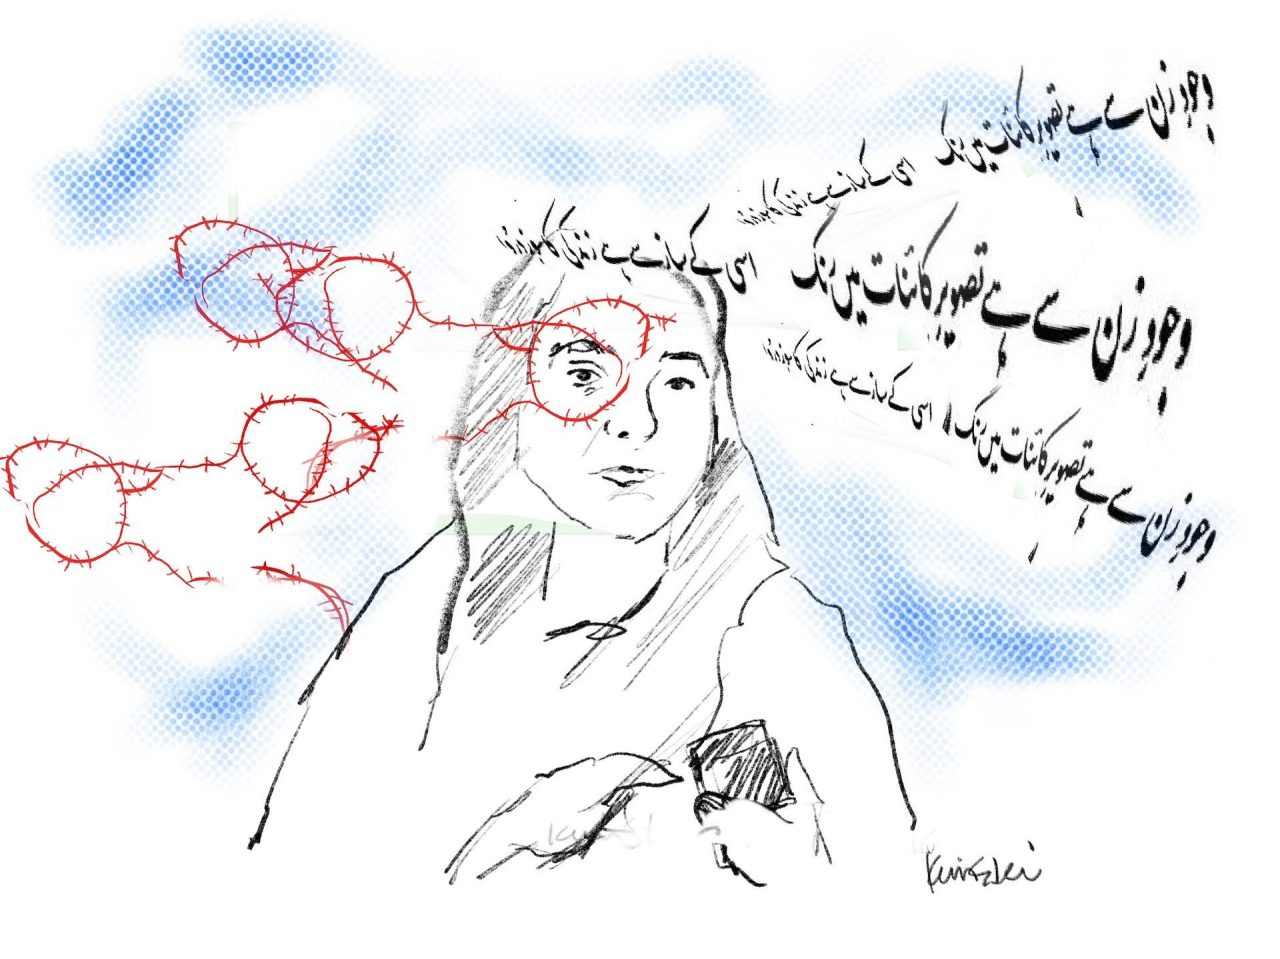 Portrait of Karima with her cell phone. Arabic text and barbed wire float around her head.